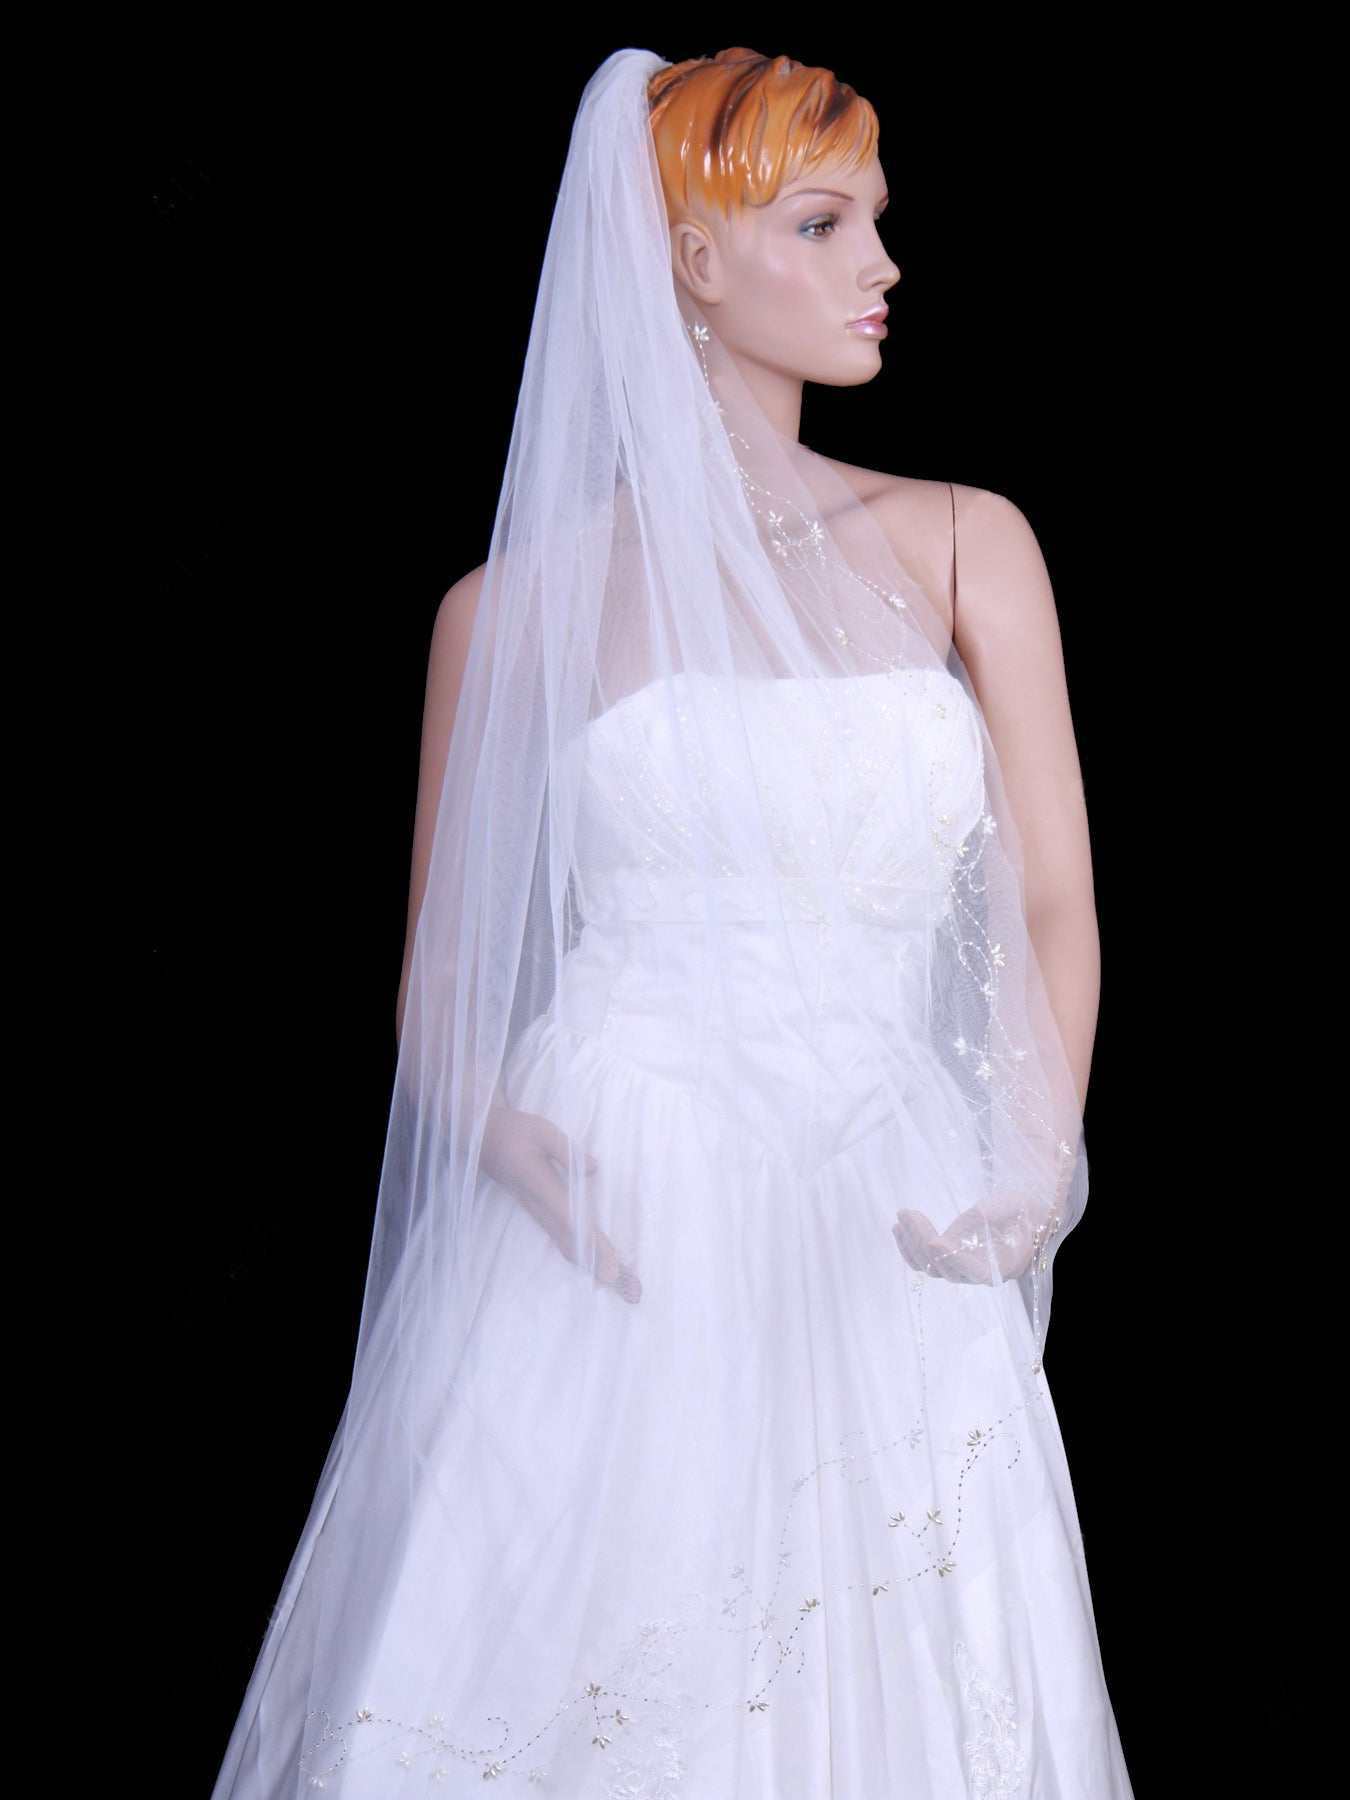 Tulle one tier chapel train wedding veil with beading Va008